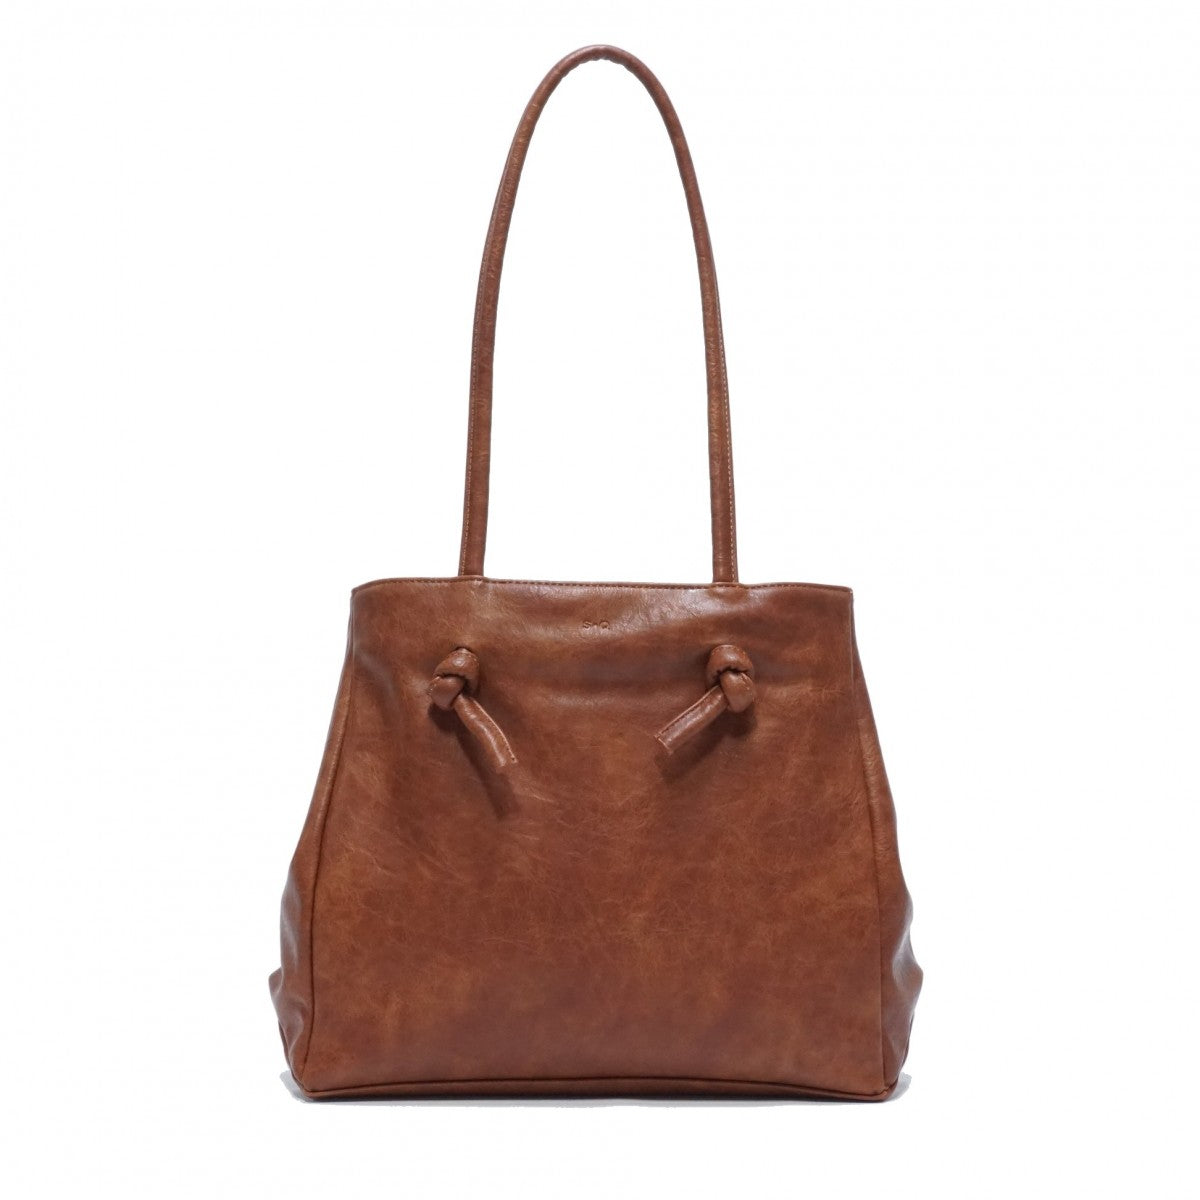 Ellie Tote : Camel. Vegan Leather.